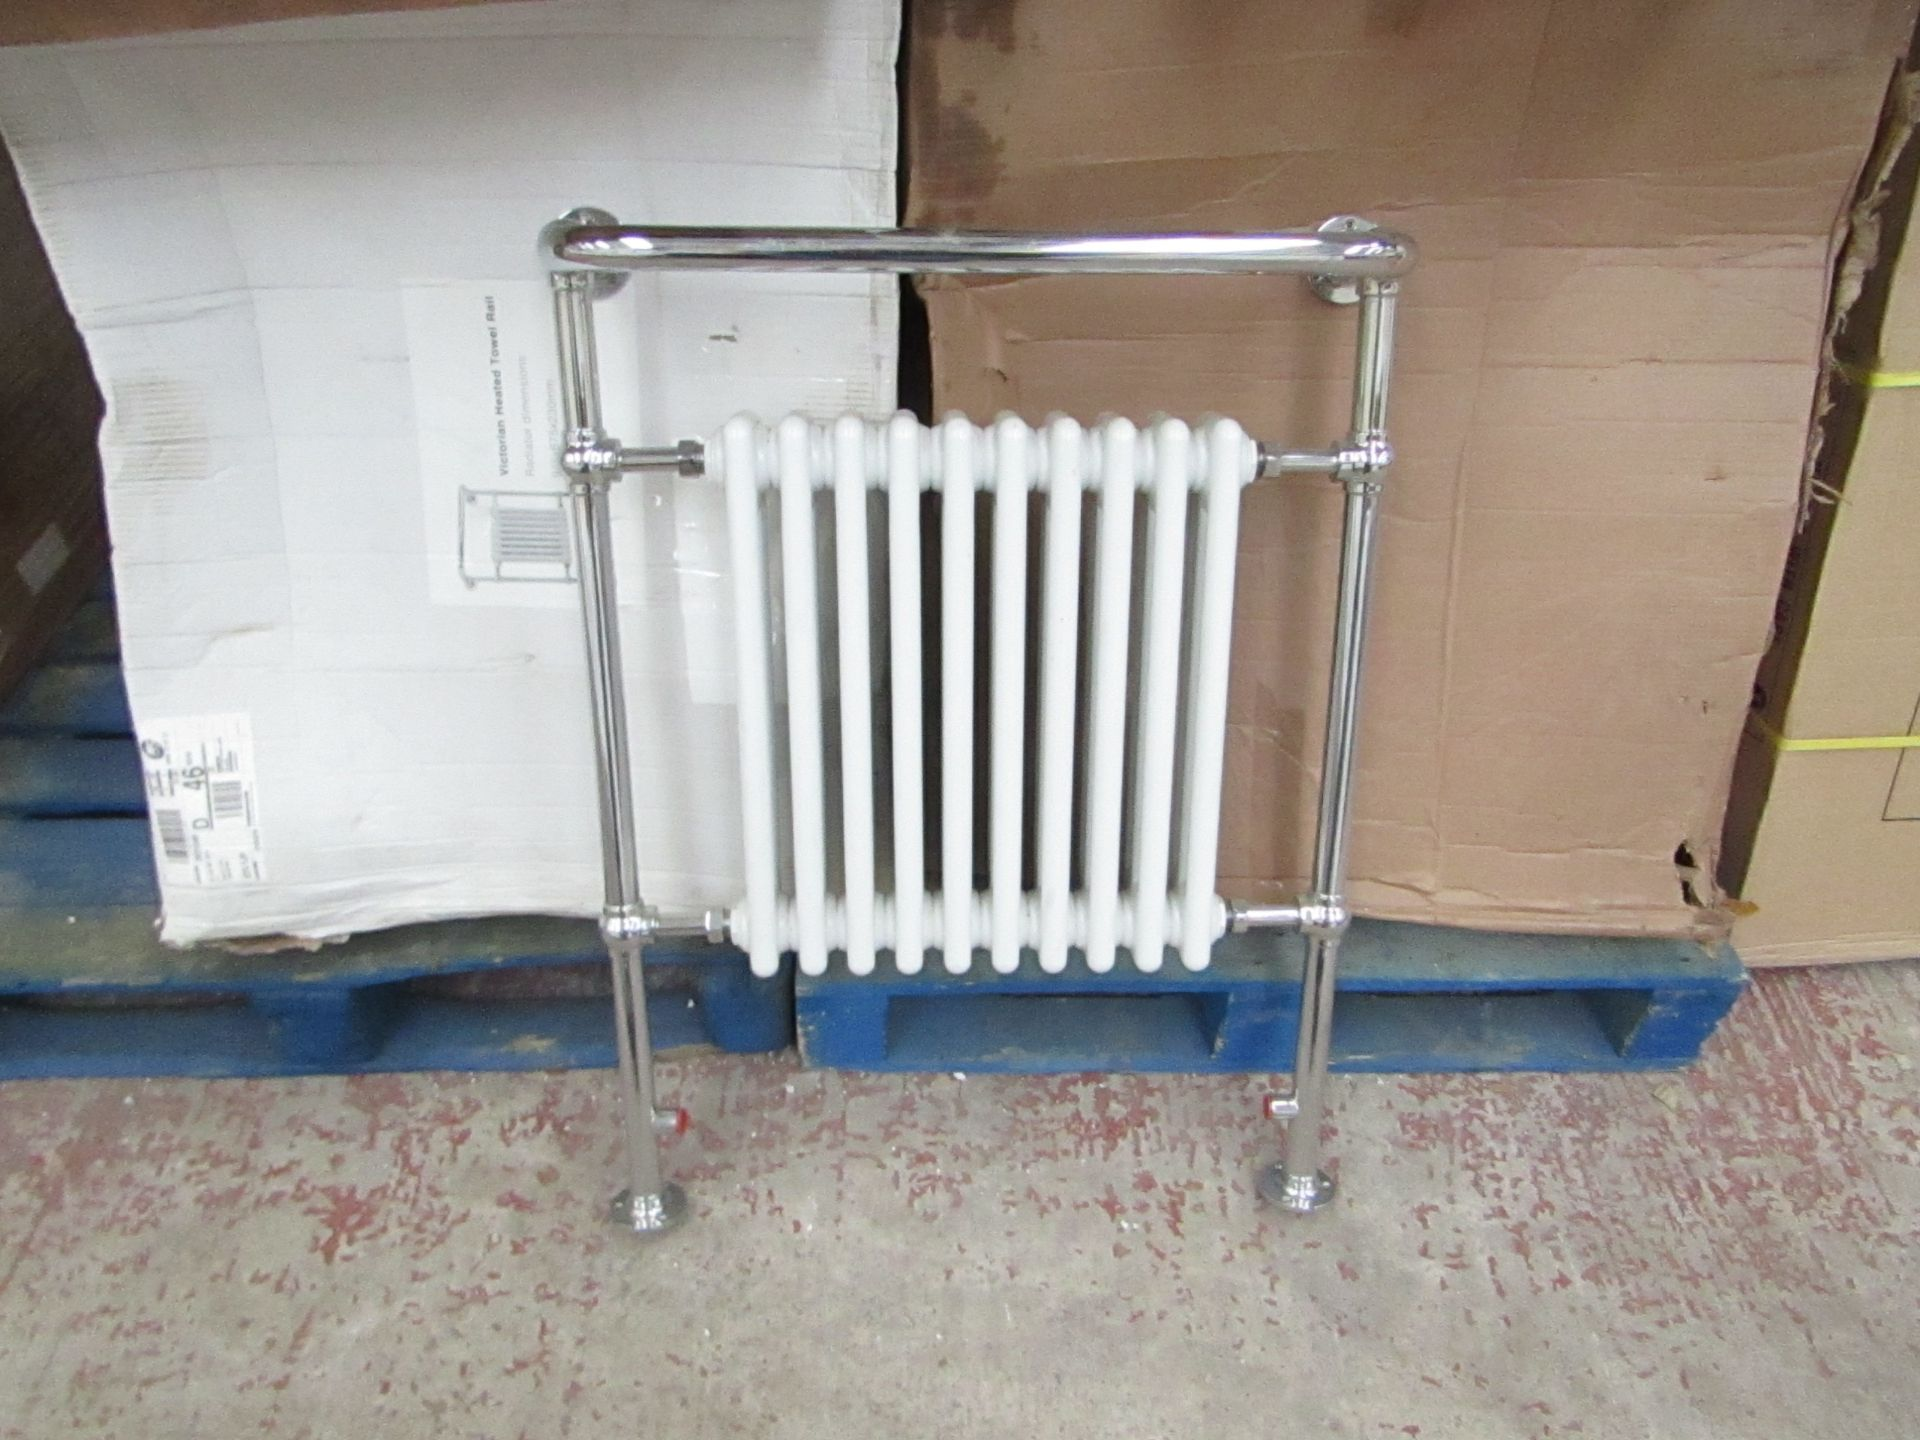 Lot 3 - Old London 10 section traditional radiator, unchecked and boxed, 70cm W x 93cm T x 24cm D